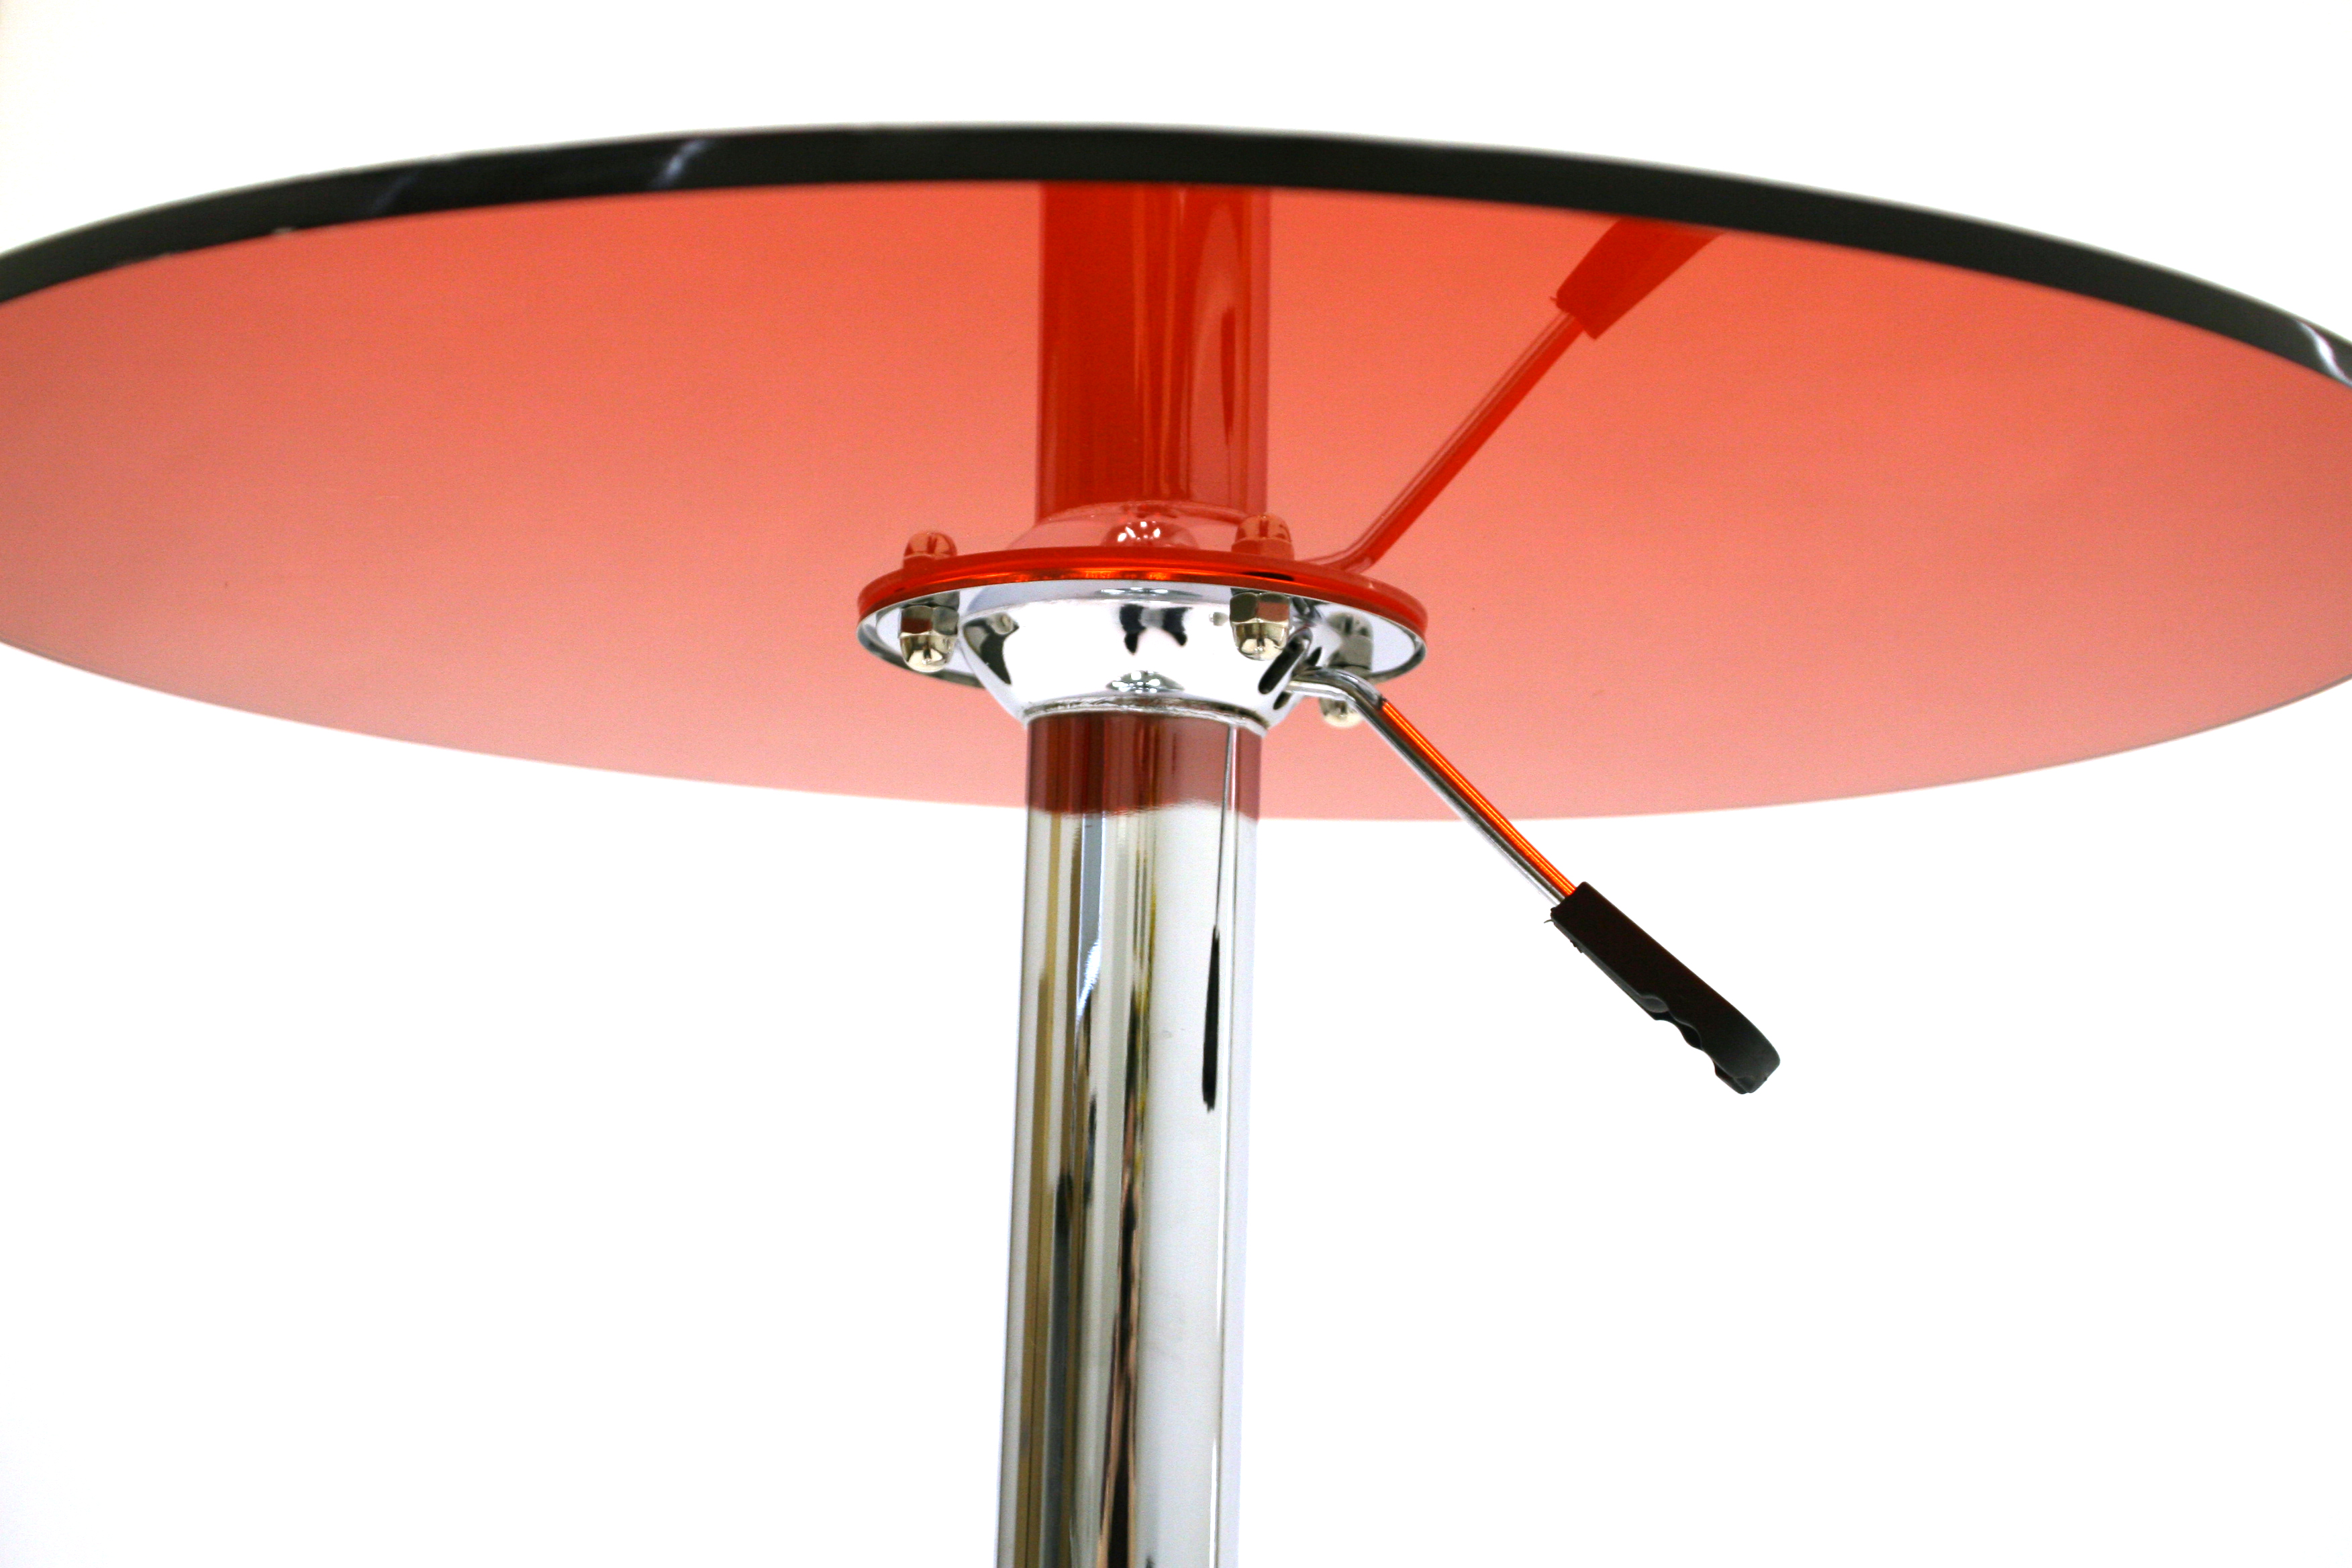 Red Acrylic Bistro Table - 60cm diameter red acrylic swivel gas lift table with a chrome metal base - BE Event Hire